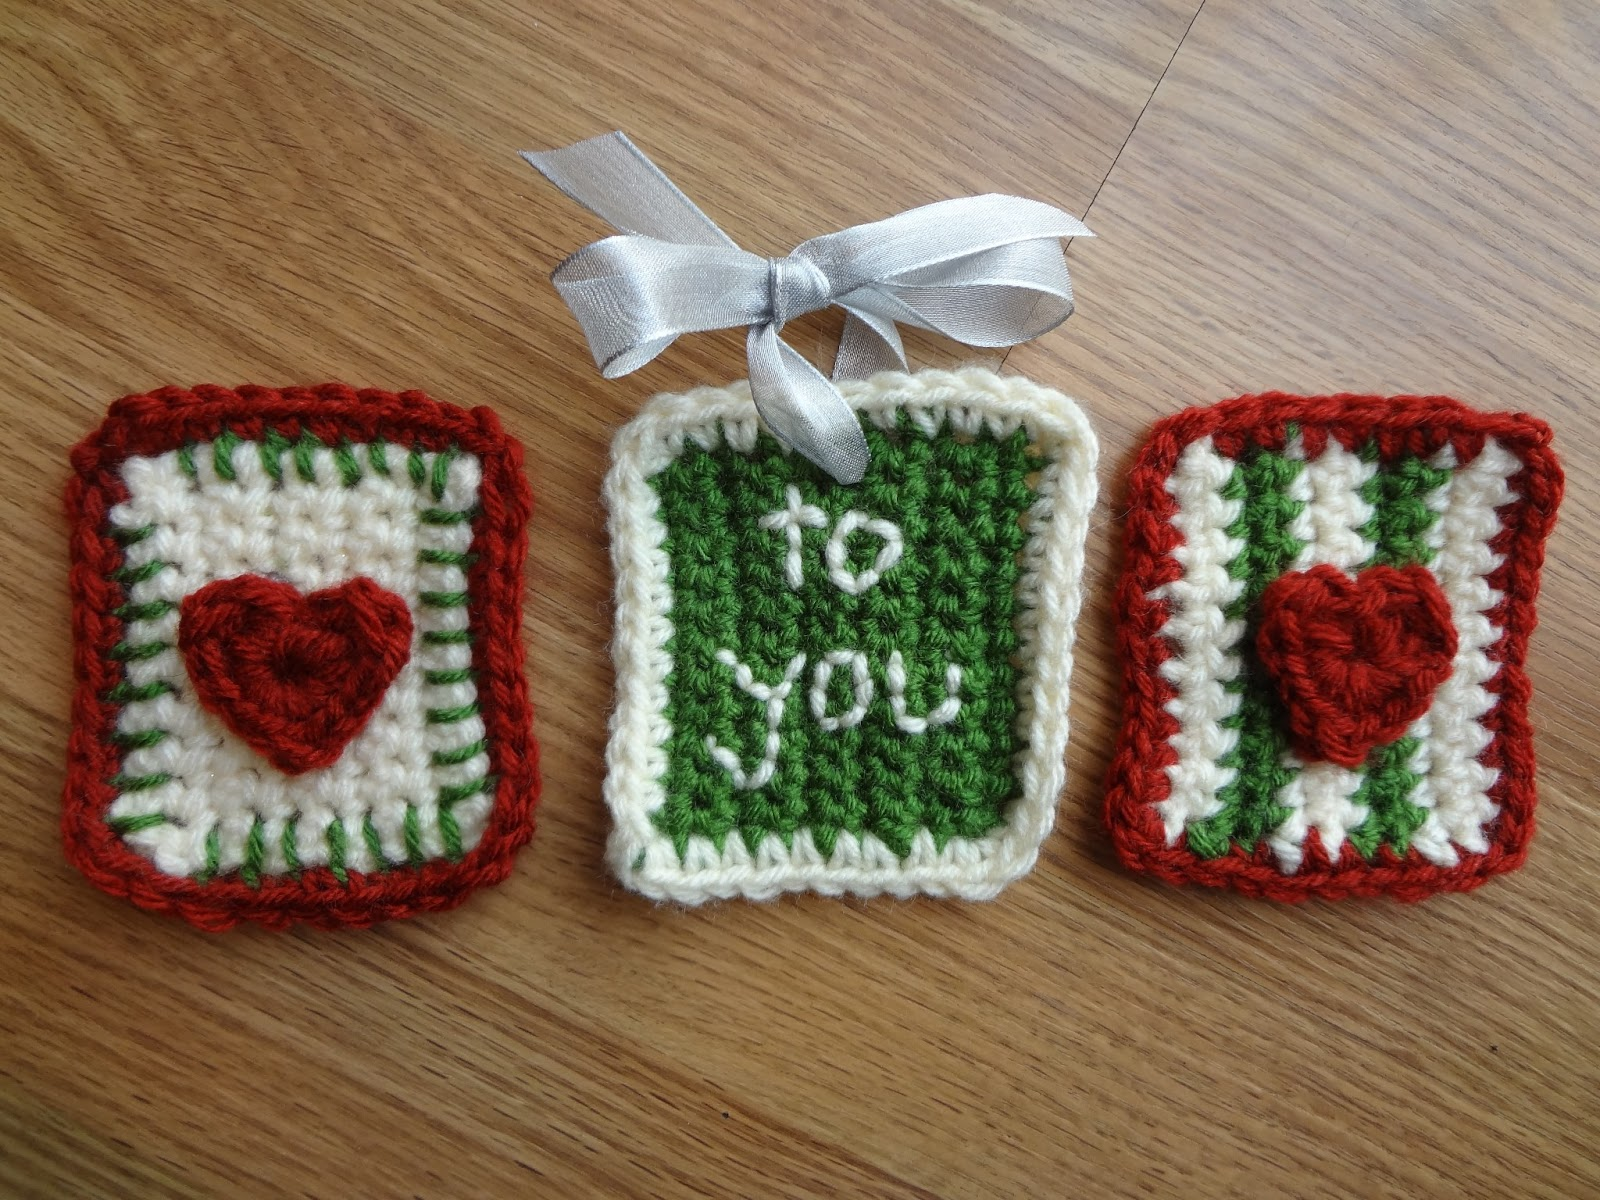 Crochet Patterns Gifts : Fiber Flux: Free Crochet Pattern...Stitchy Gift Tags!